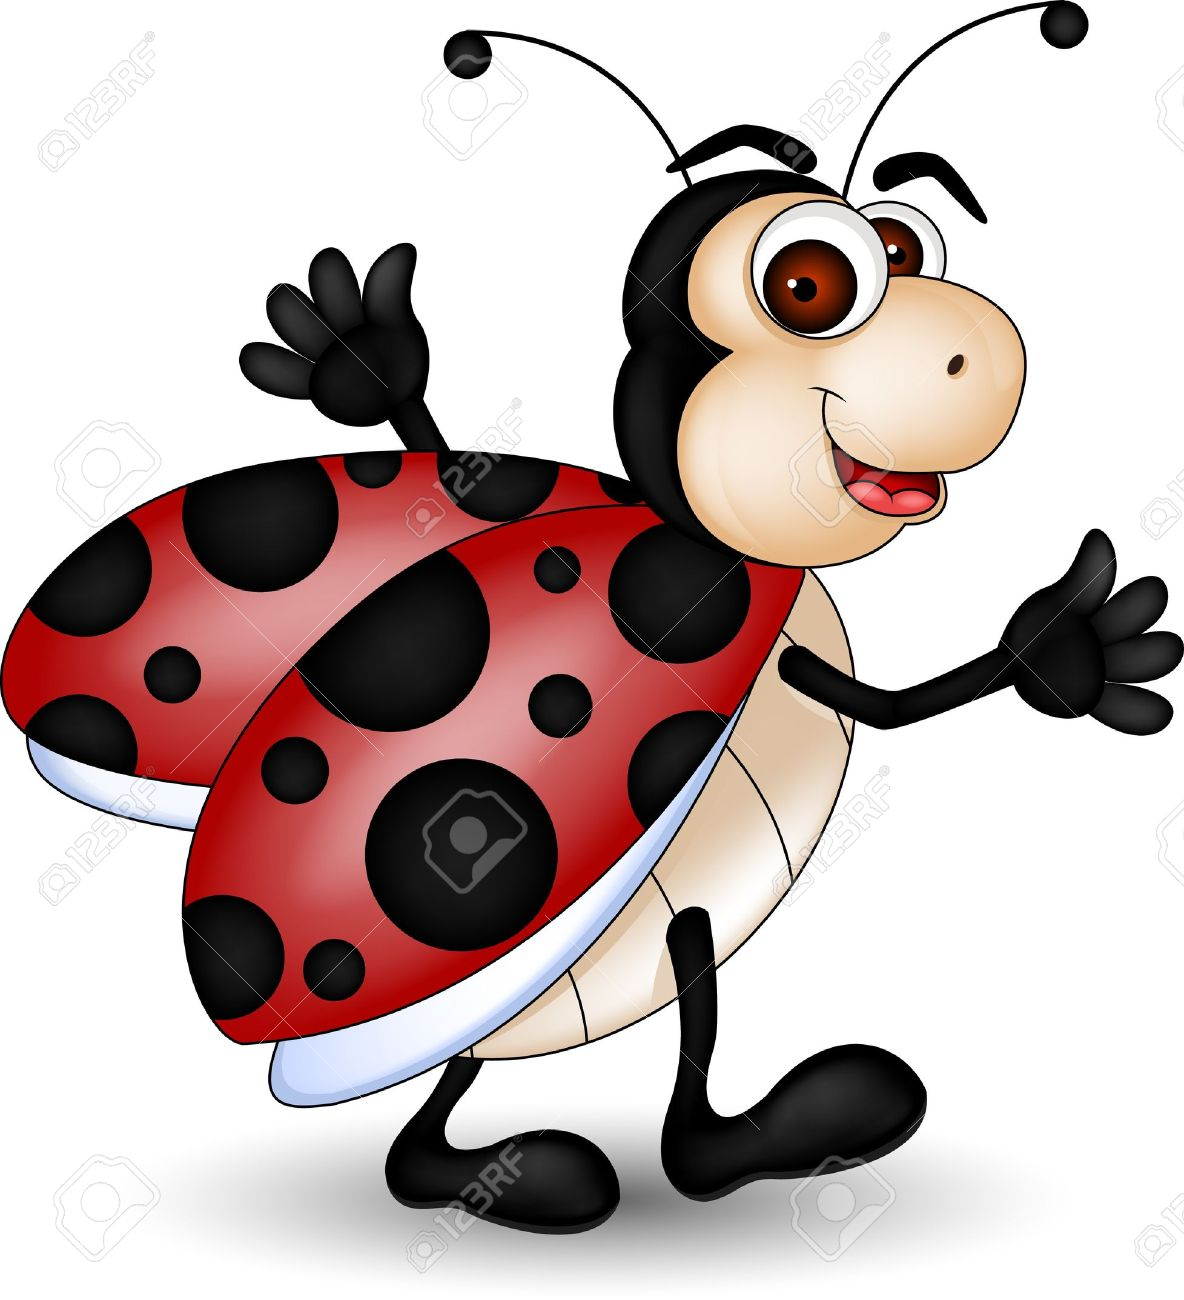 A Cartoon Ladybug funny ladybug cartoon